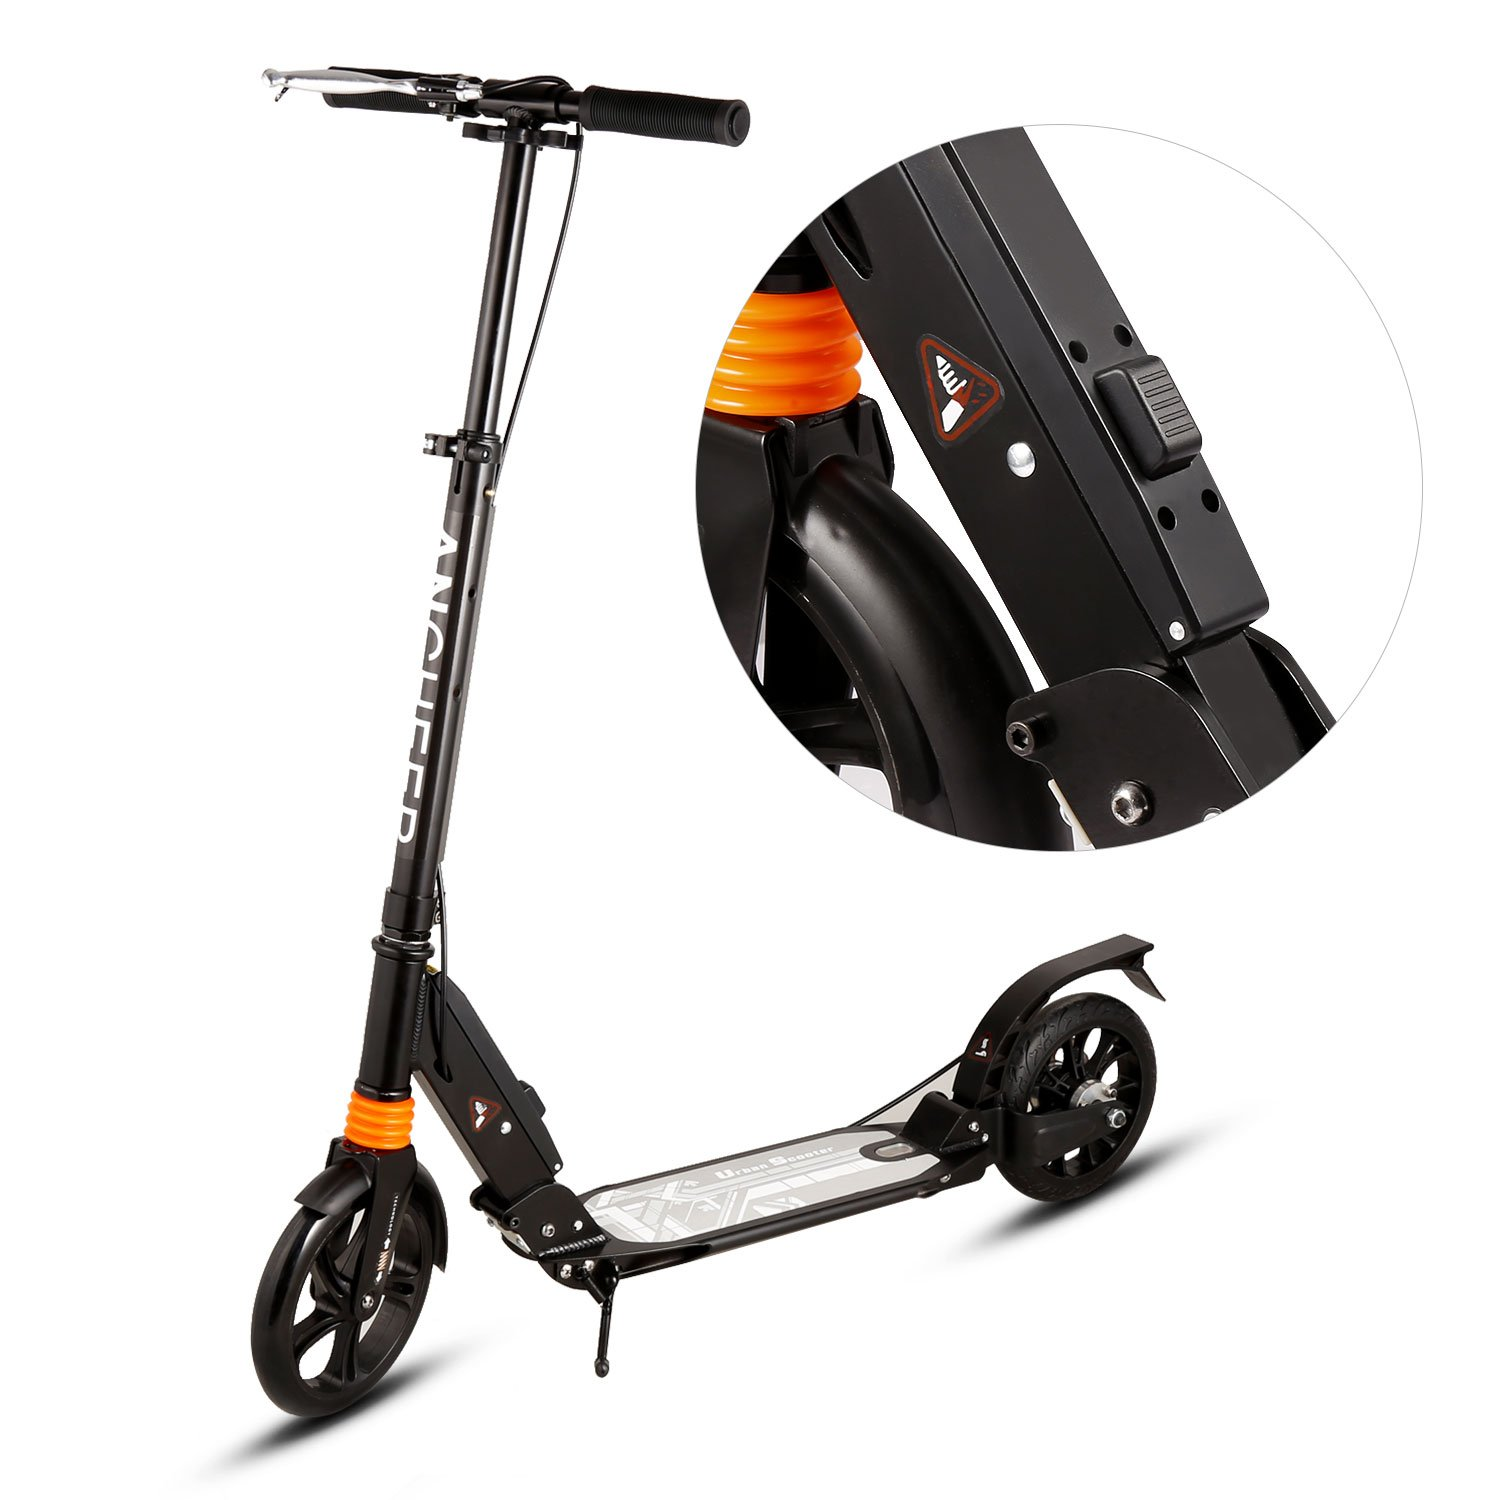 Ancheer A4 Adult Scooter Dual Suspension, Single Button Folding System, Adjustable Height Handle Bar, Lightweight kick scooter with Front and Disc brakes and 200mm big Wheels, 220 lbs Weight Capacity by ANCHEER